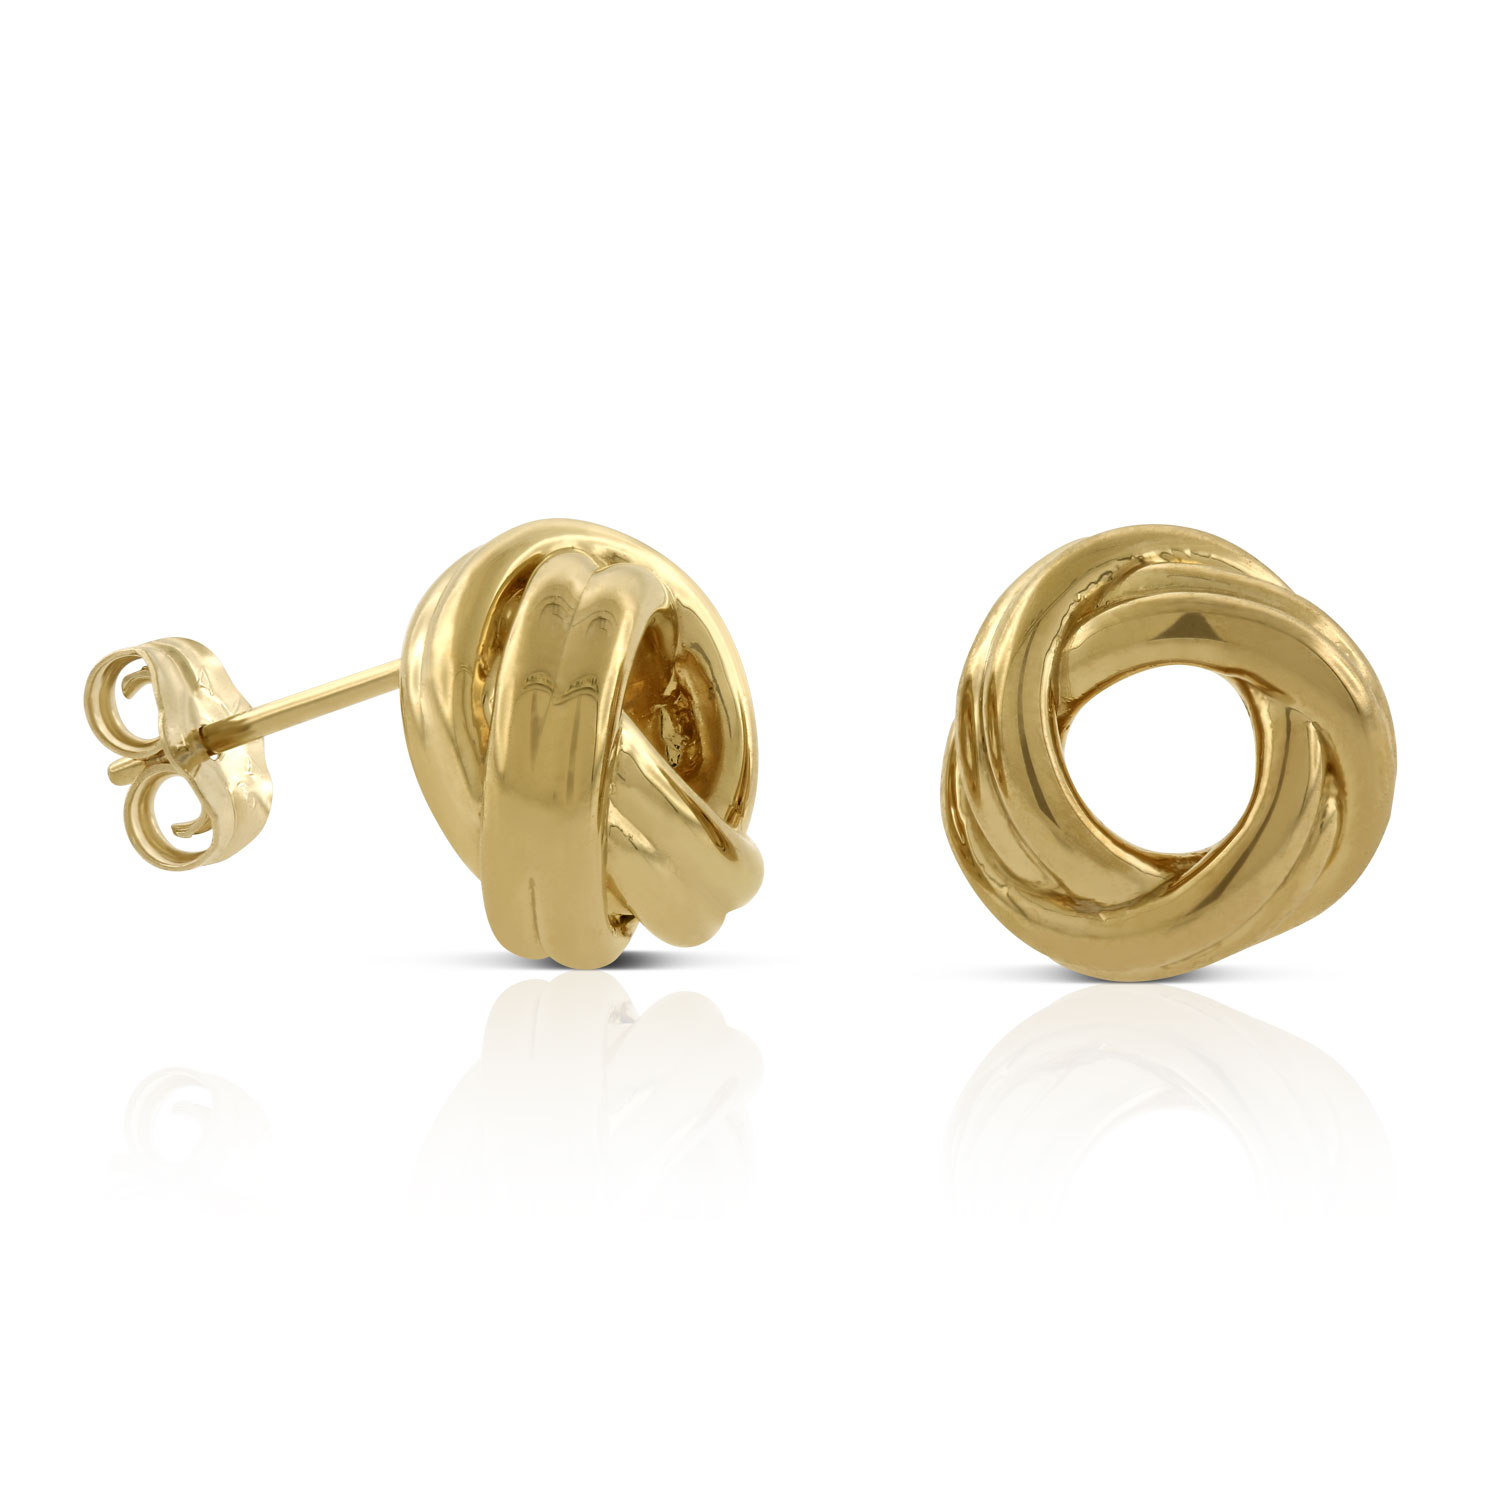 Real 14kt Yellow Gold Polished /& Twisted Love Knot Post Earrings